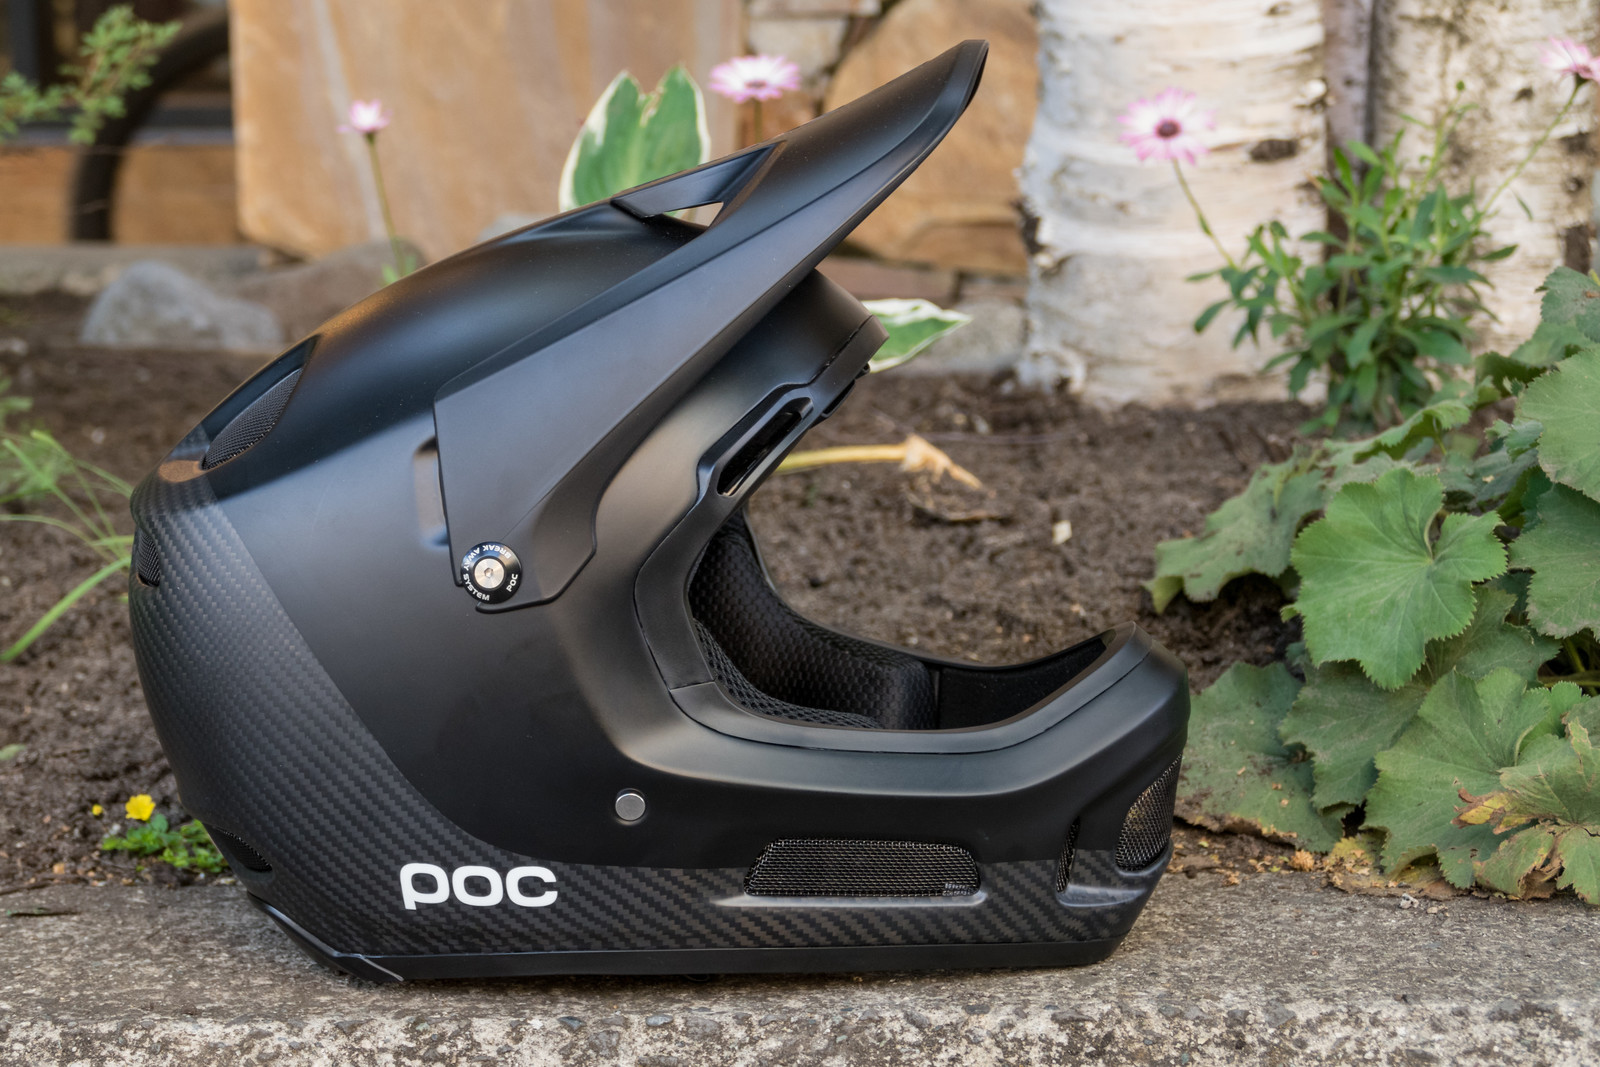 POC Coron Air Carbon SPIN Helmet - All Black for 2020 - PIT BITS - 2019 Crankworx Whistler Bikes and Tech - Mountain Biking Pictures - Vital MTB